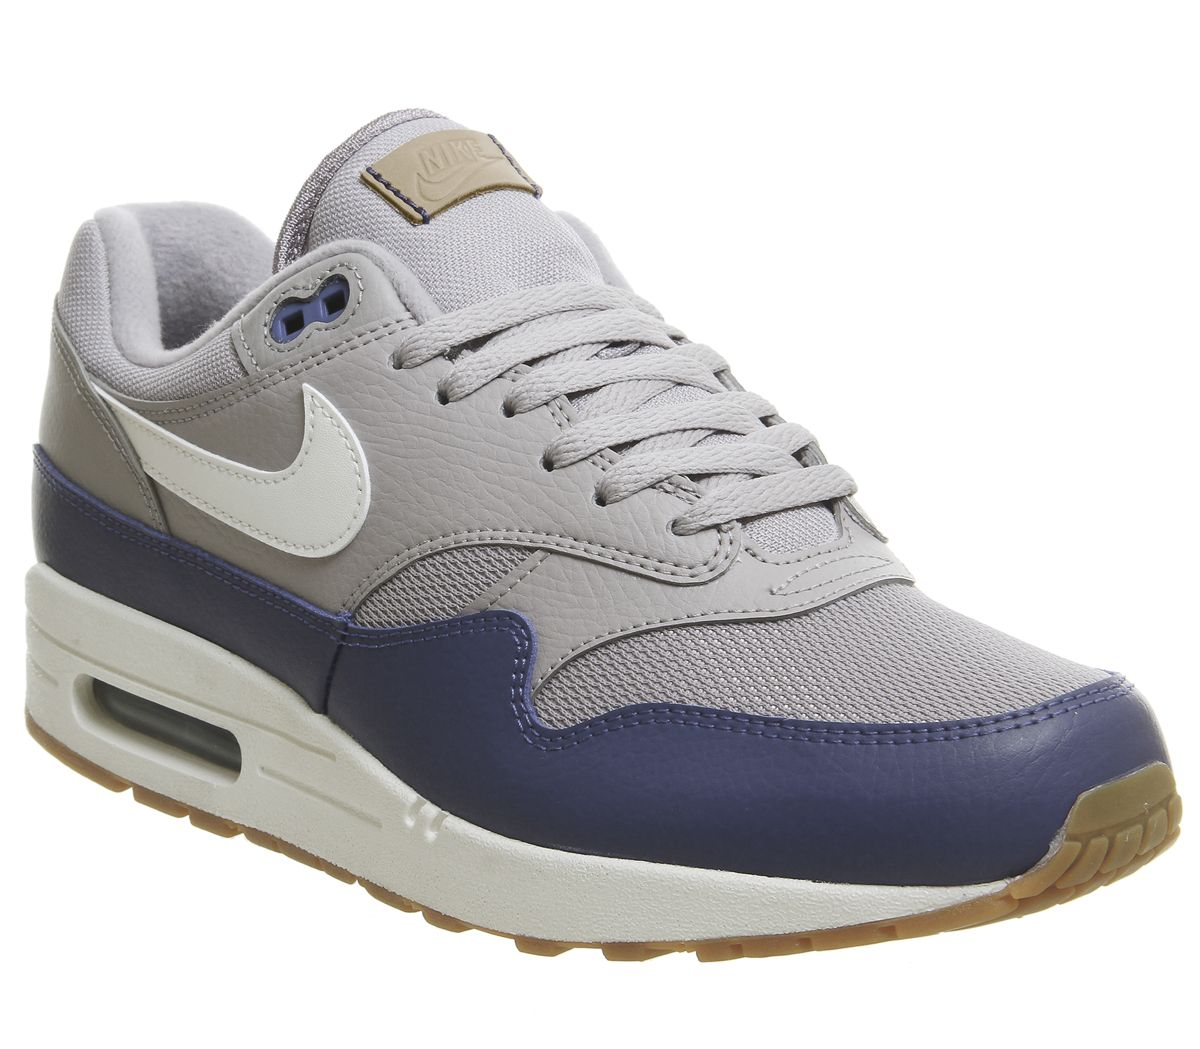 online store 42d4e c1c09 Nike Air Max 1 Trainers Atmosphere Grey Sail Deep Royal - His trainers